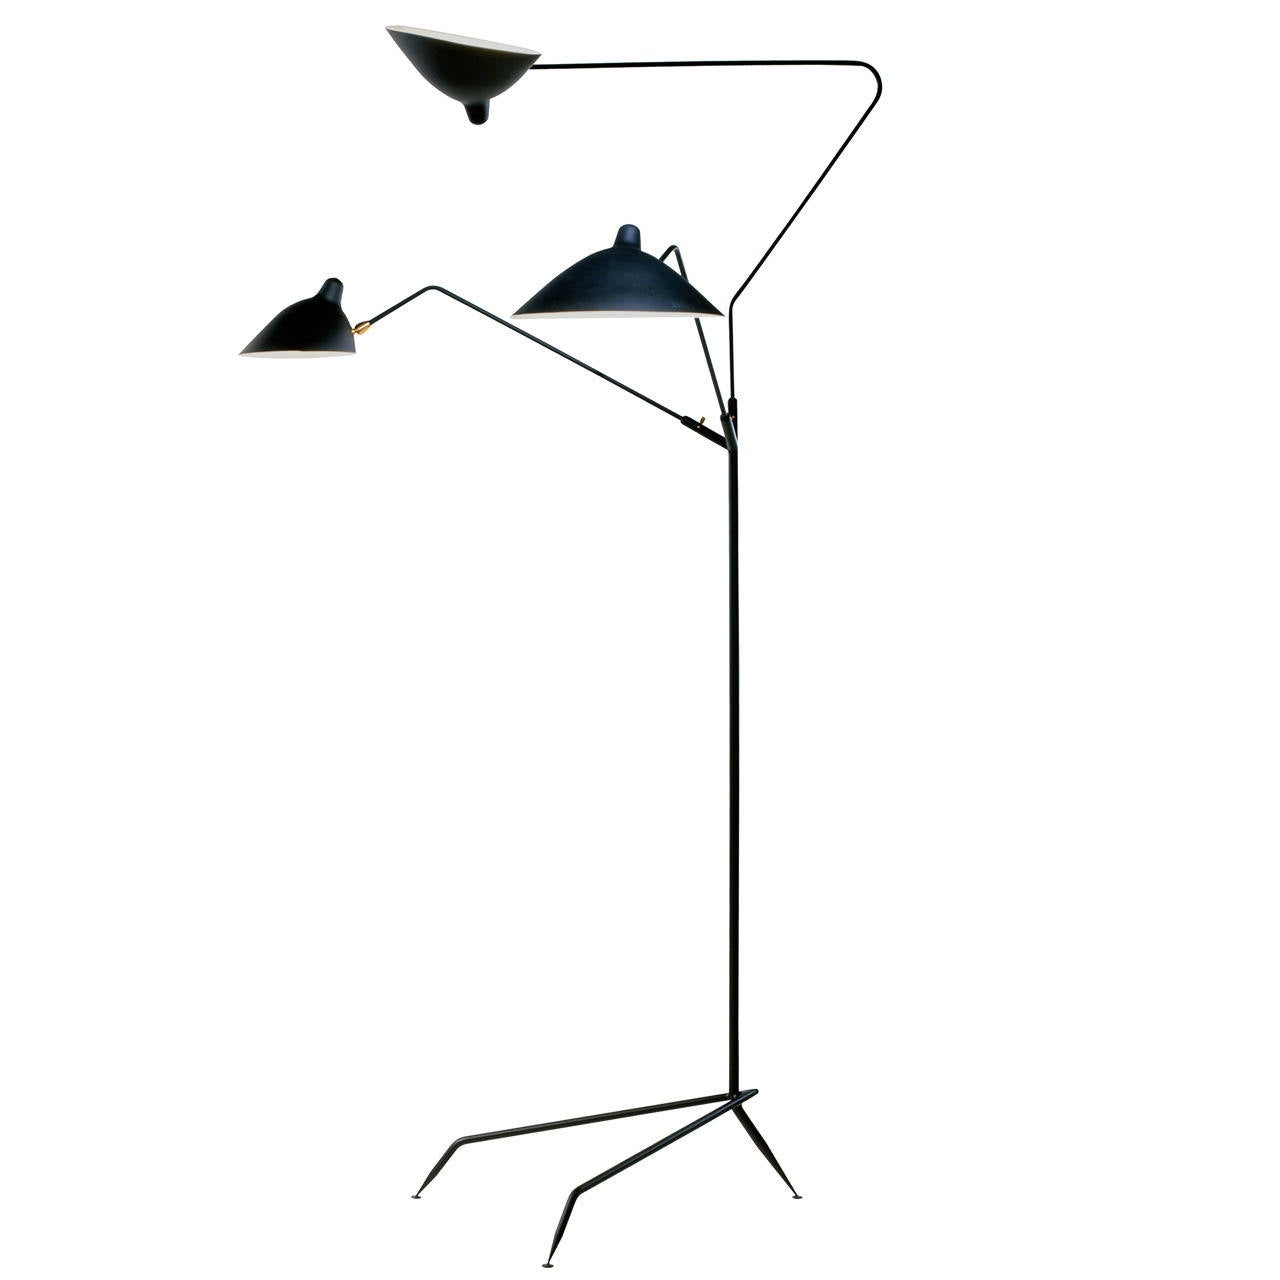 Design Serge Mouille standing lamp with three arms by serge mouille at 1stdibs 1